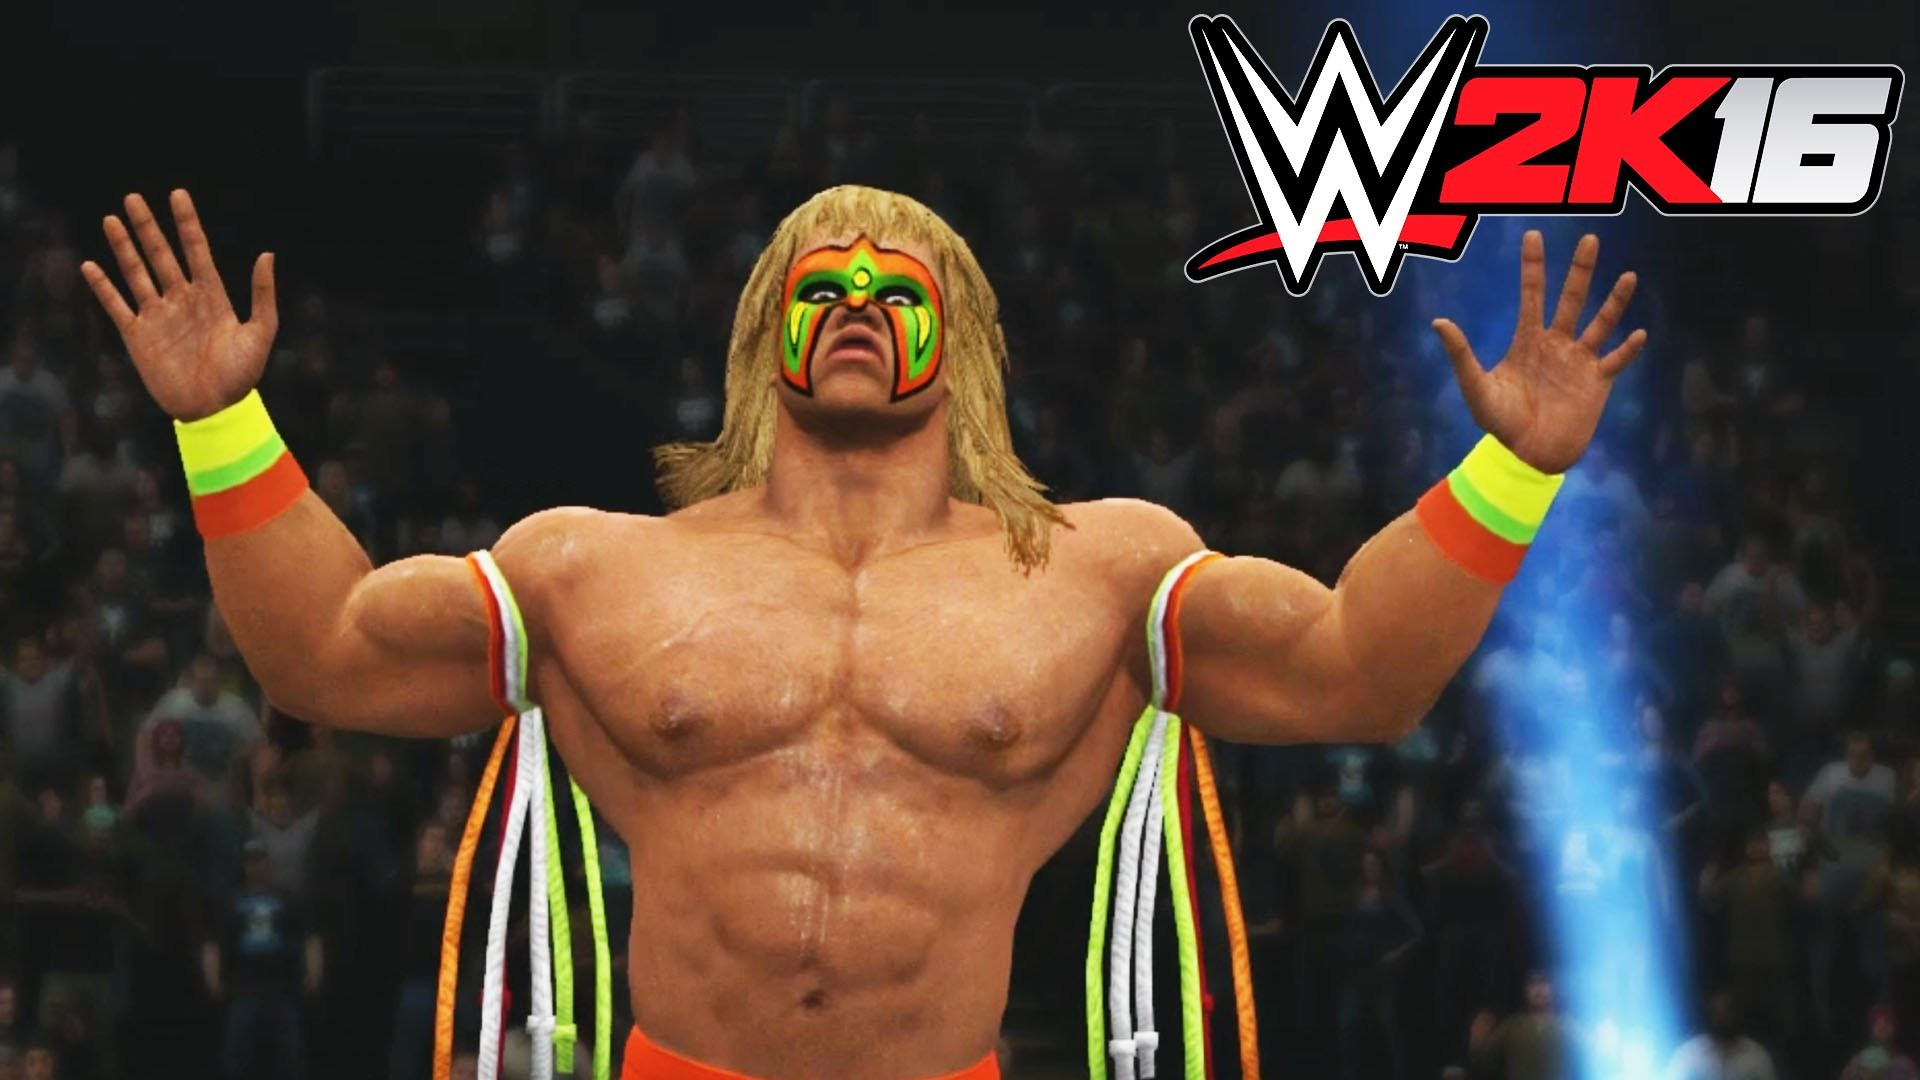 WWE 2K16 – X360 PS3 Gameplay (XBOX 360 720P) Ultimate Warrior vs Mankind